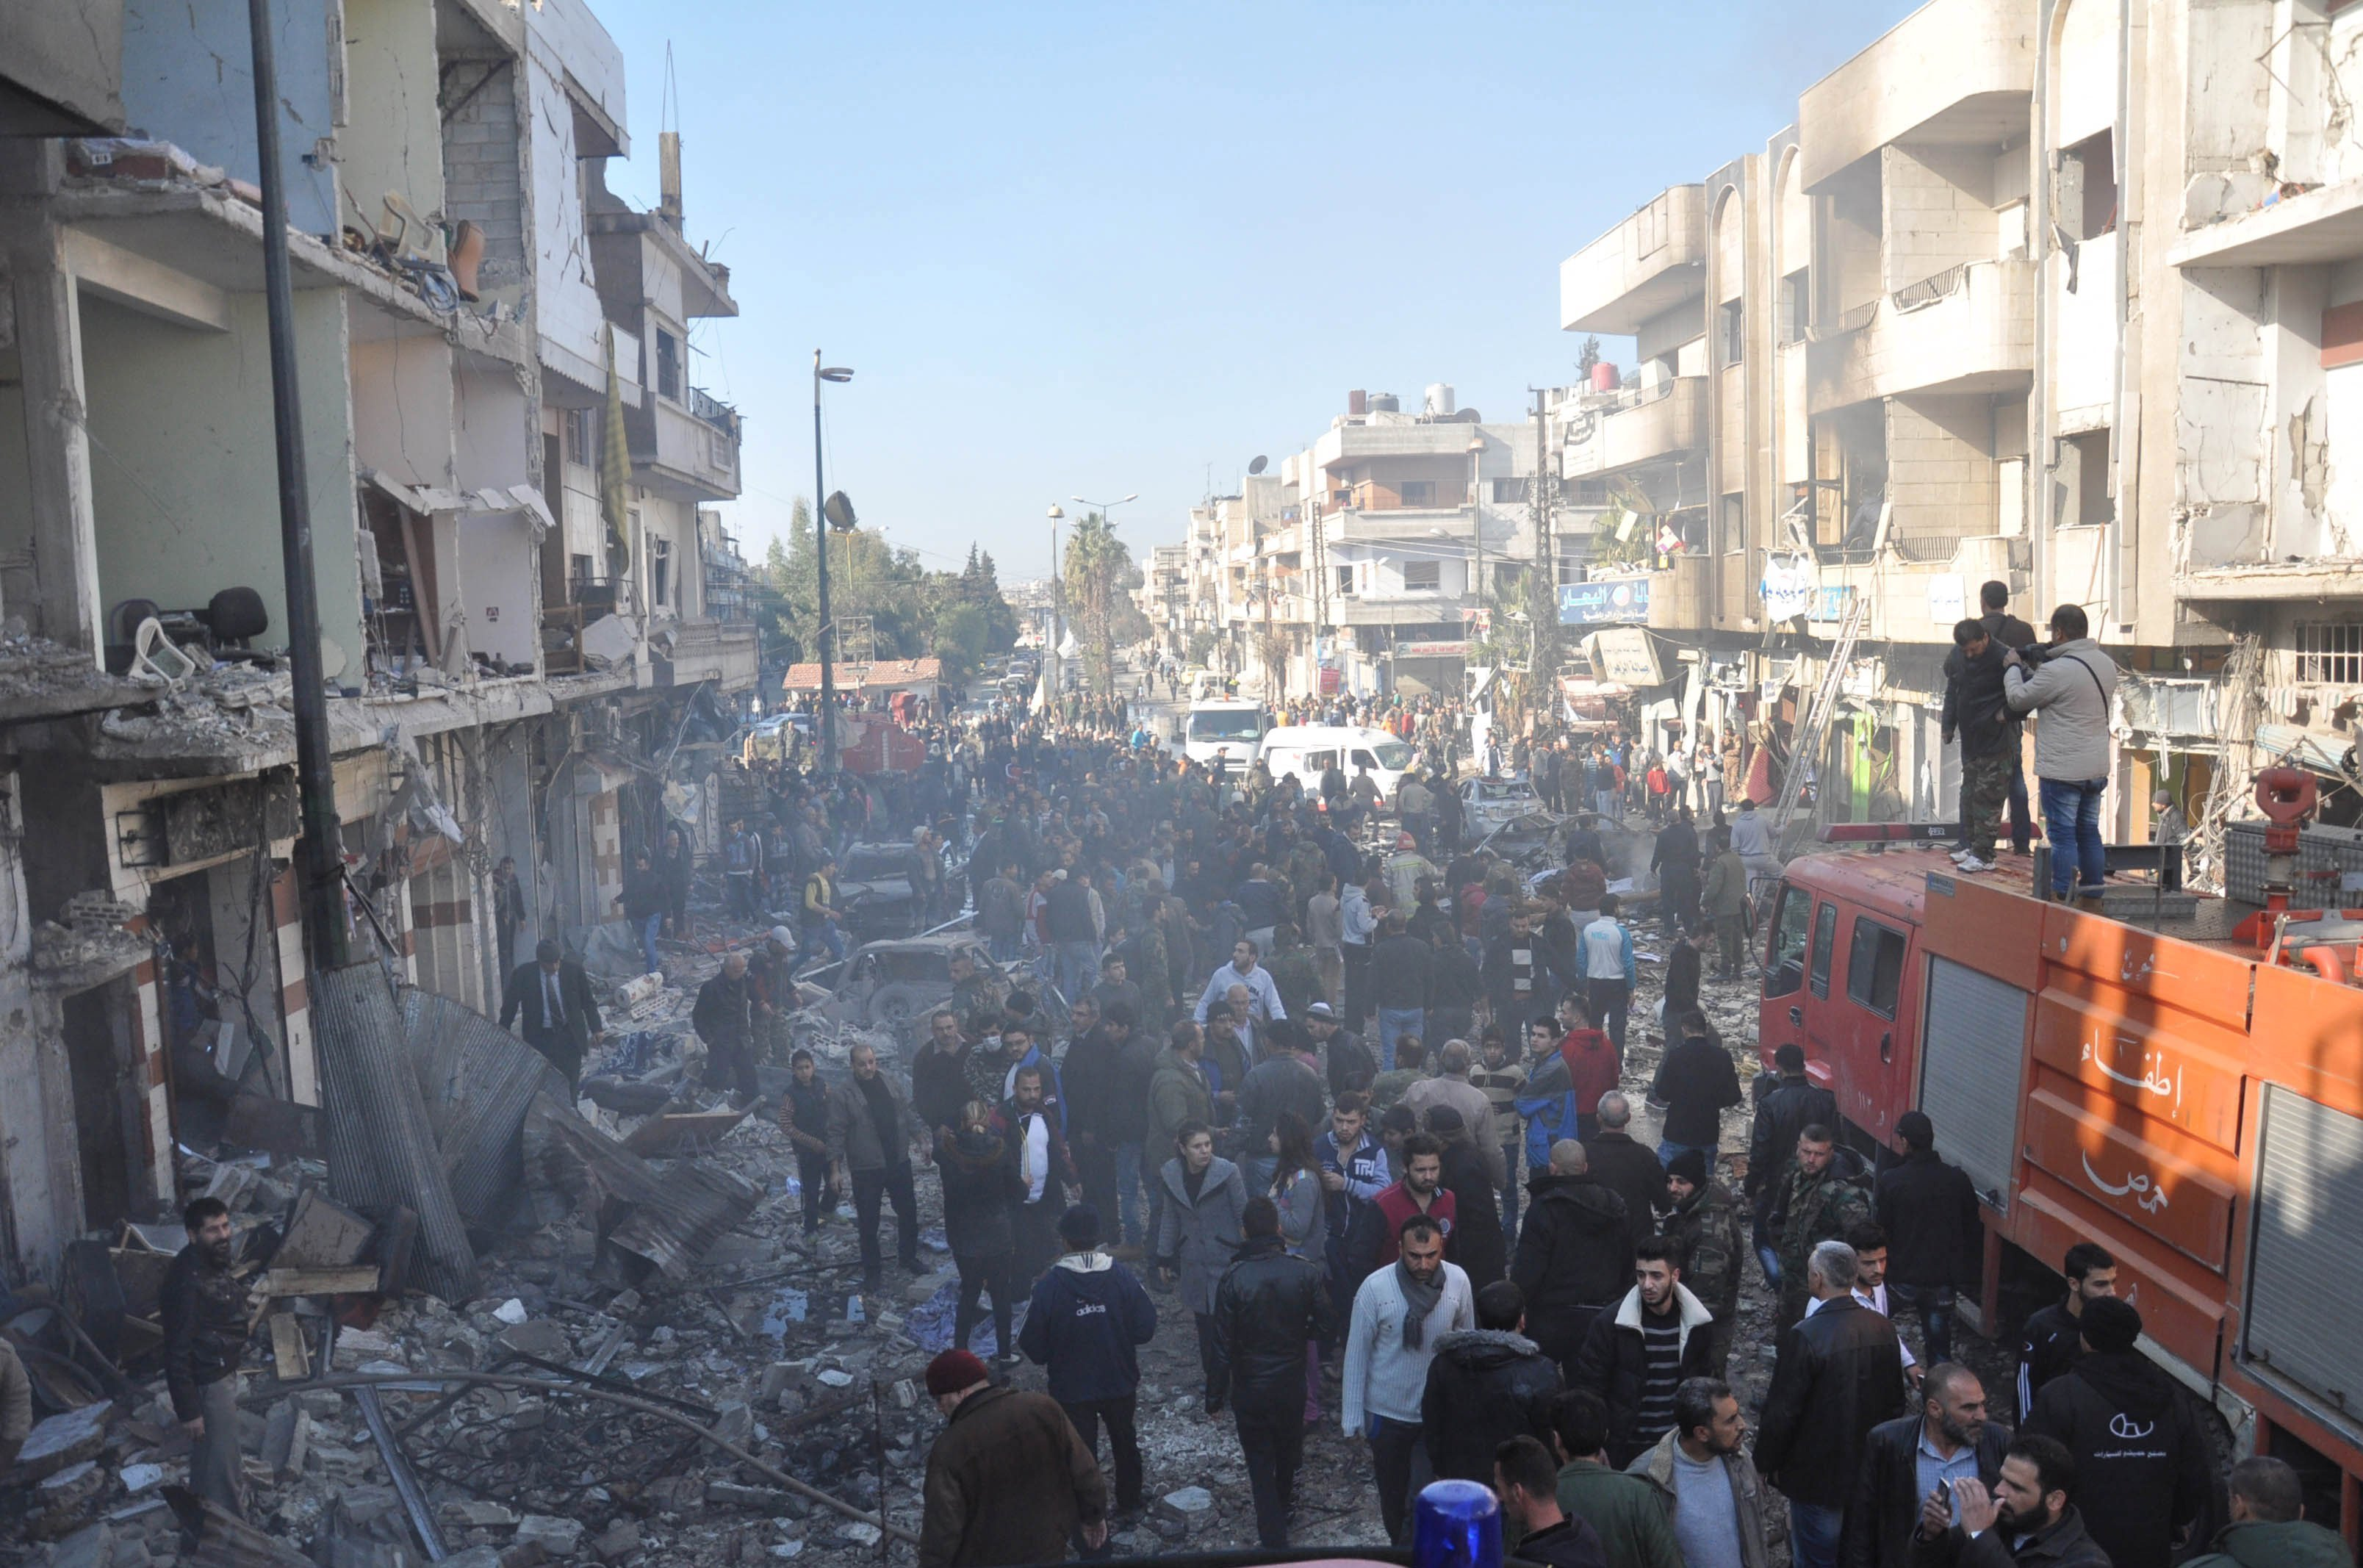 Syrian army soldiers, members of security services and civilians inspect the site of two bomb explosions in the Syrian city of Homs, Syria, in this handout picture provided by SANA on December 28, 2015